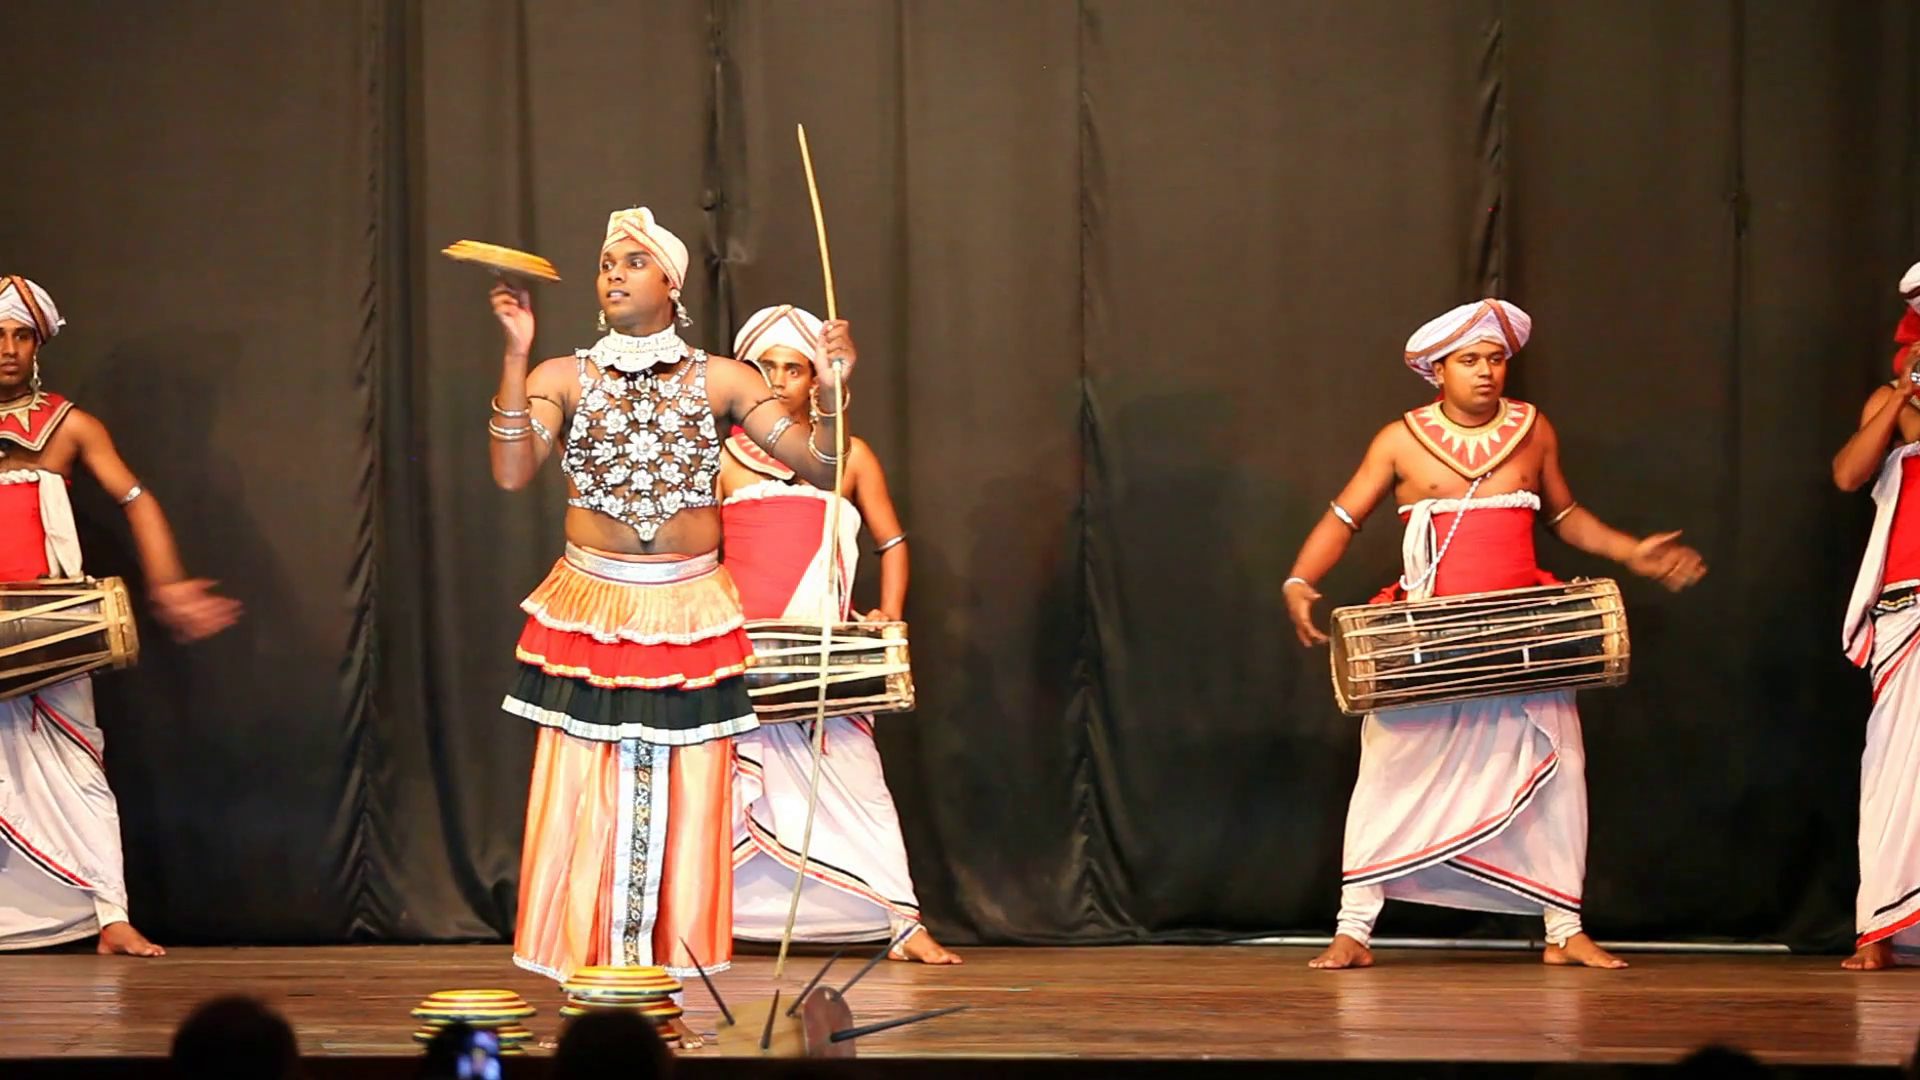 Kandyan Dance Performance & Temple of the Tooth